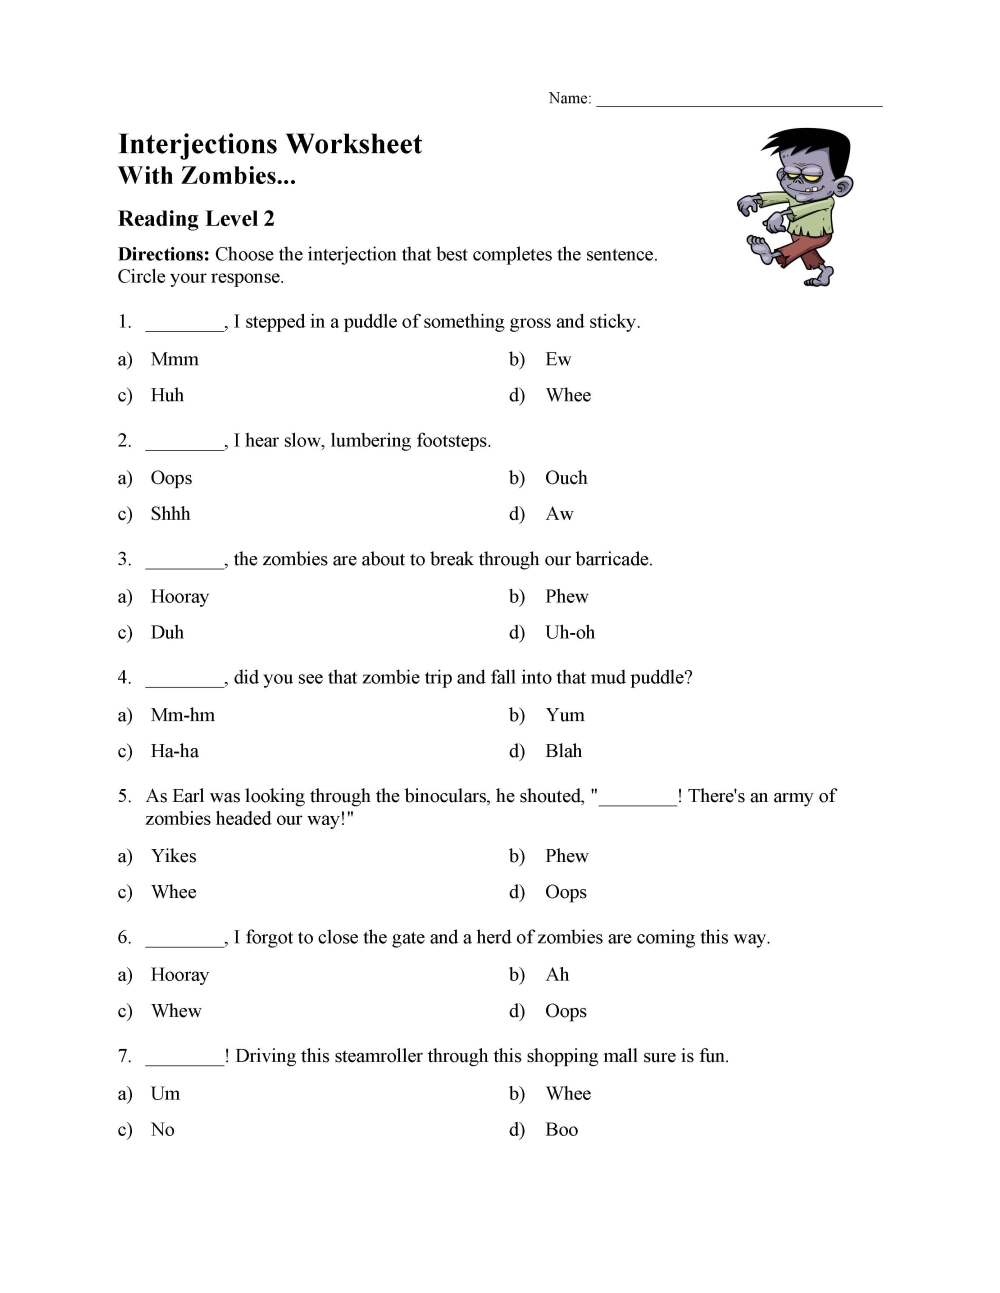 medium resolution of Interjections Worksheet - Reading Level 2   Preview